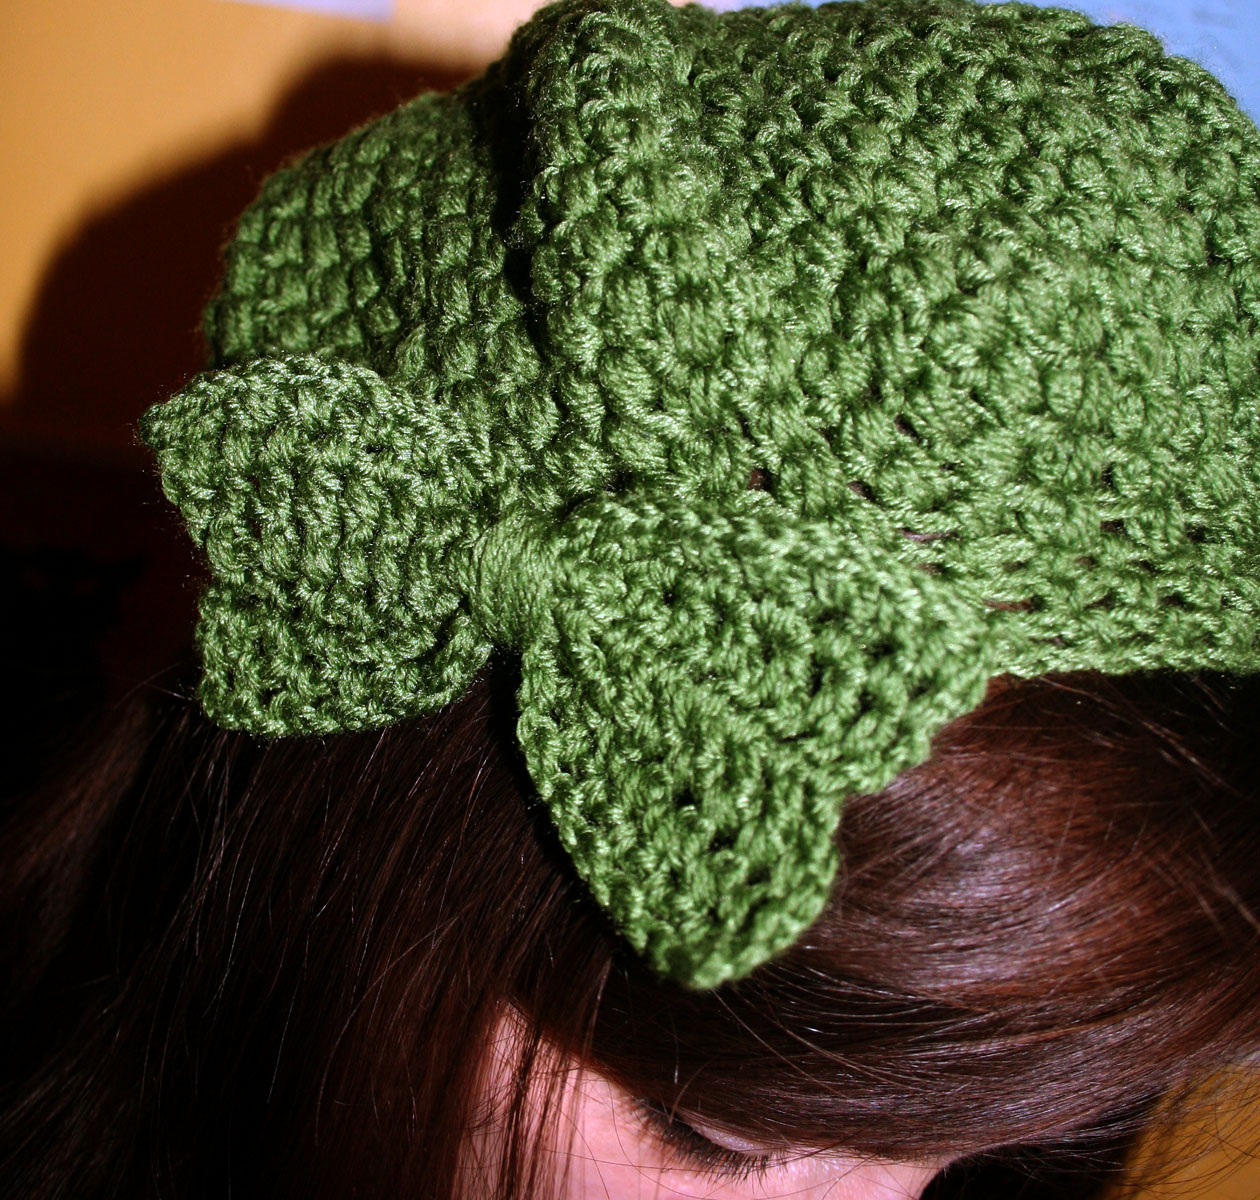 Free Crochet Patterns Slouchy Beret : CROCHET SLOUCH BERET PATTERN - Crochet Club